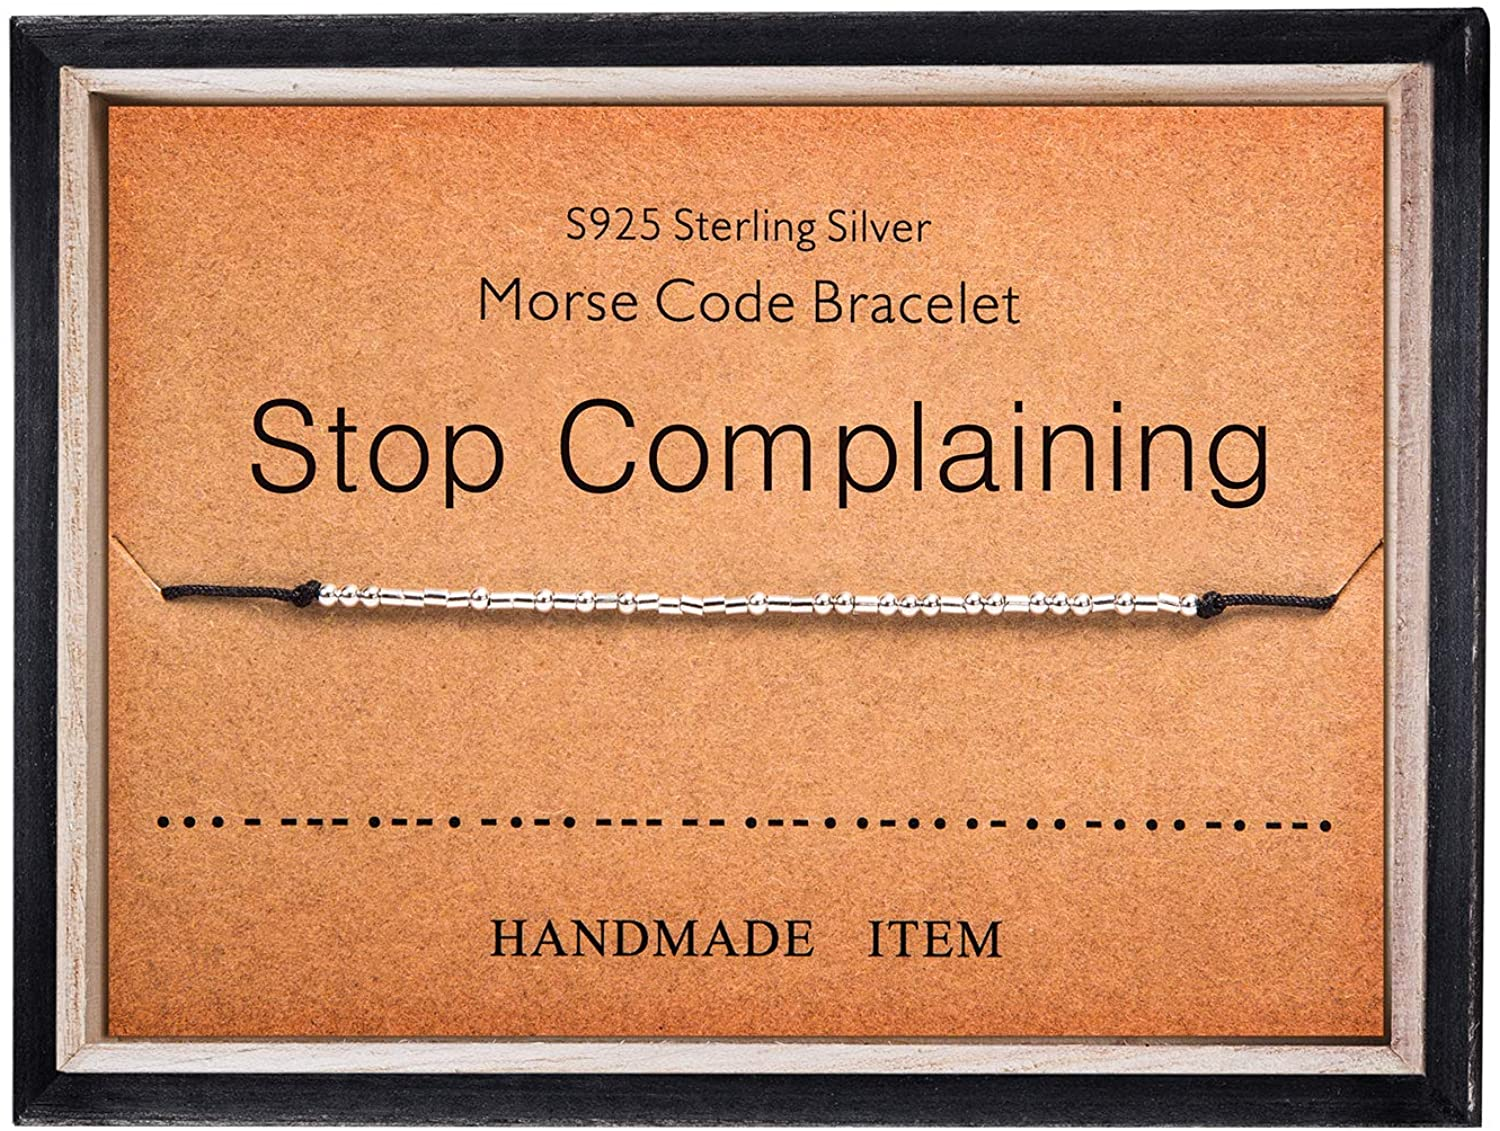 Stop Complaining Bracelet Morse Code Jewelry Gift for Her 925 Sterling Silver Bead on Silk Cord Bracelet Inspirational Jewelry for Women